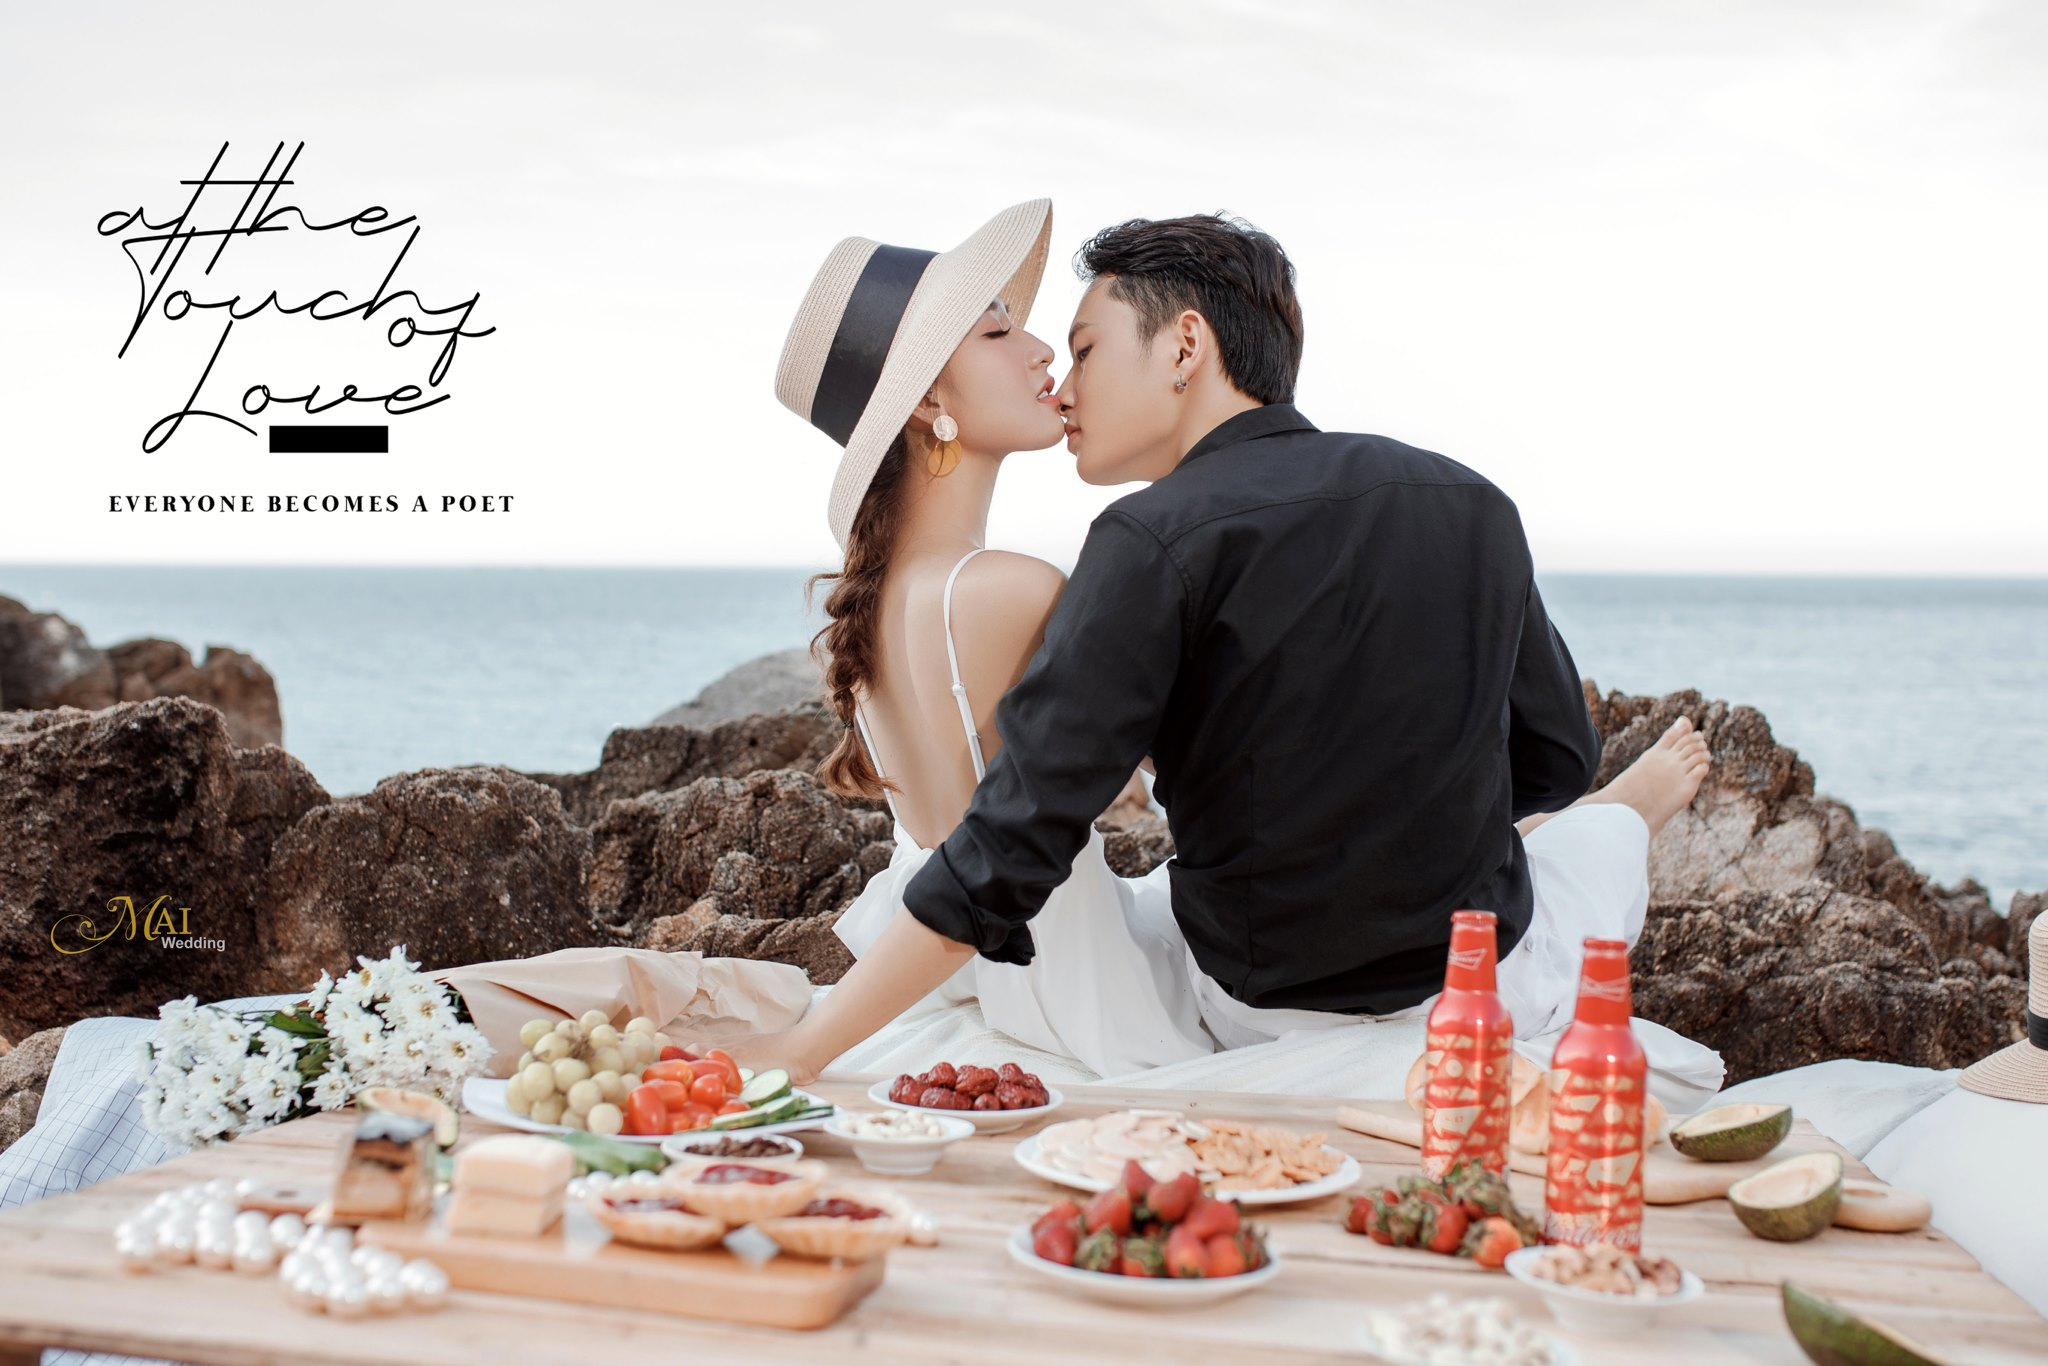 Concept Picnic By The Sea - 106740181 1422254394634094 3403669743570734440 o 2